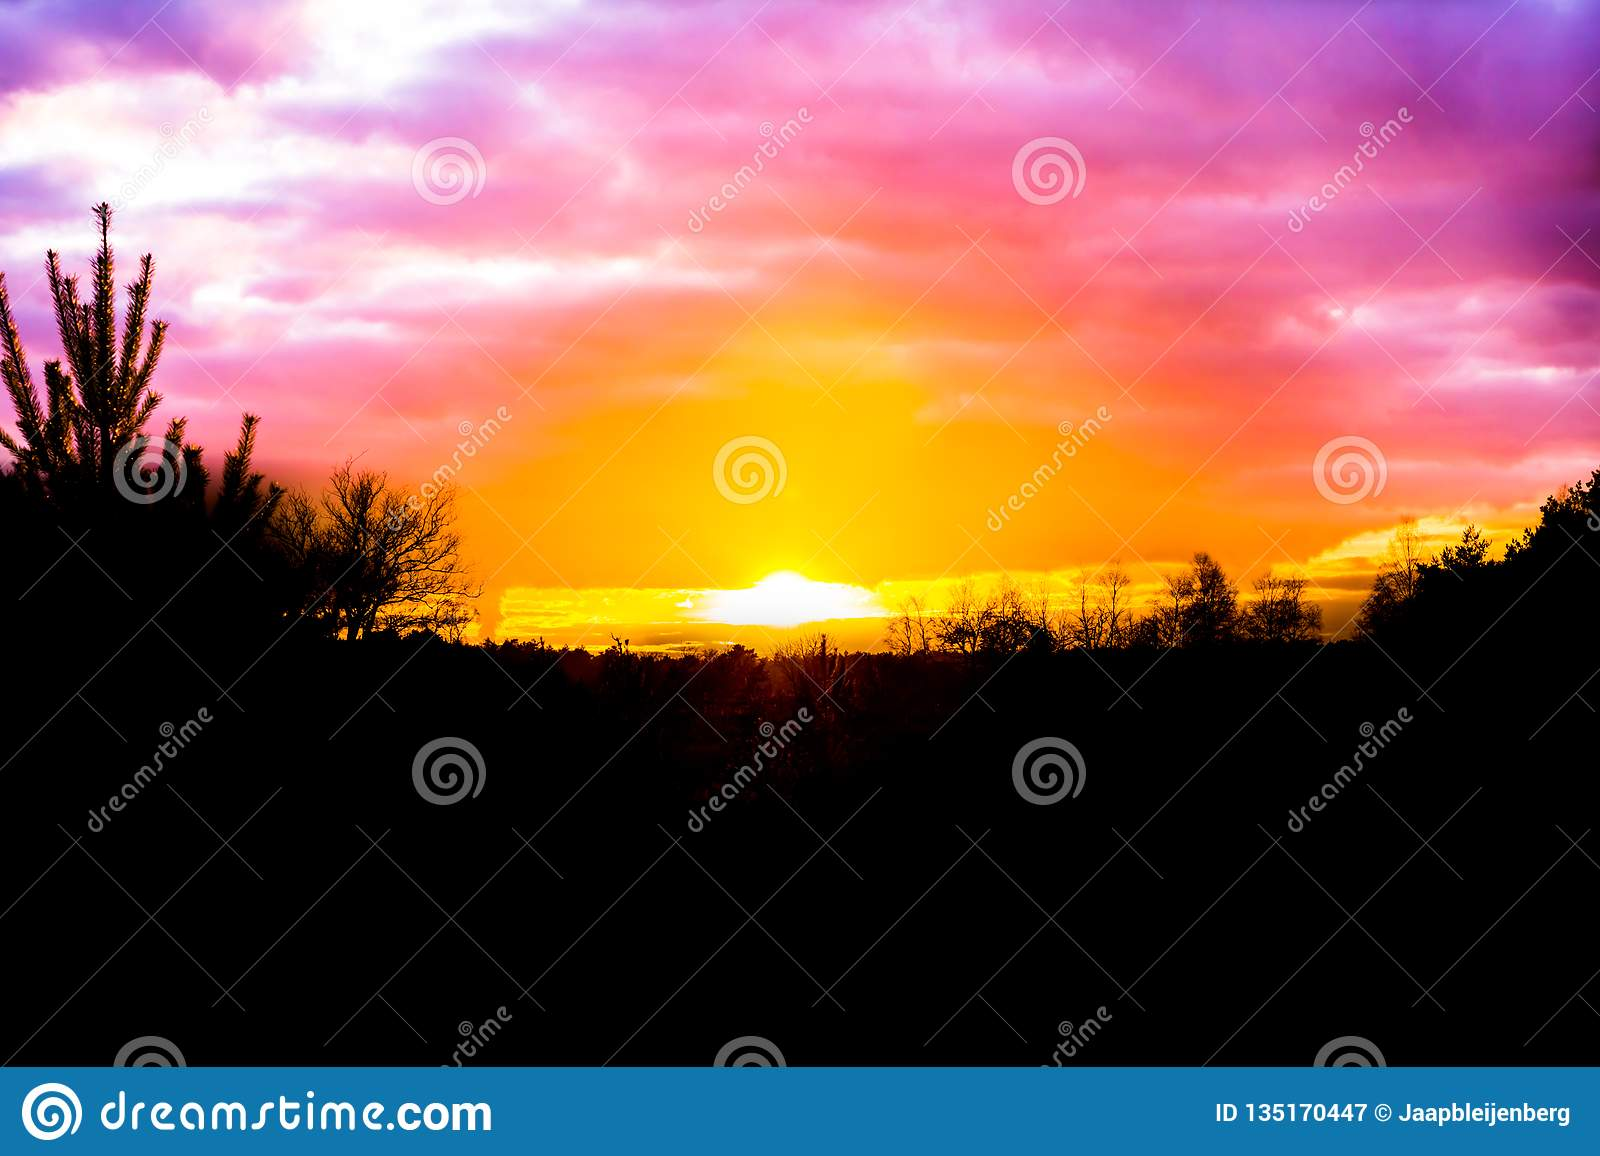 Sundown in a heather landscape with pink nacreous clouds, a rare and colorful weather effect in the sky